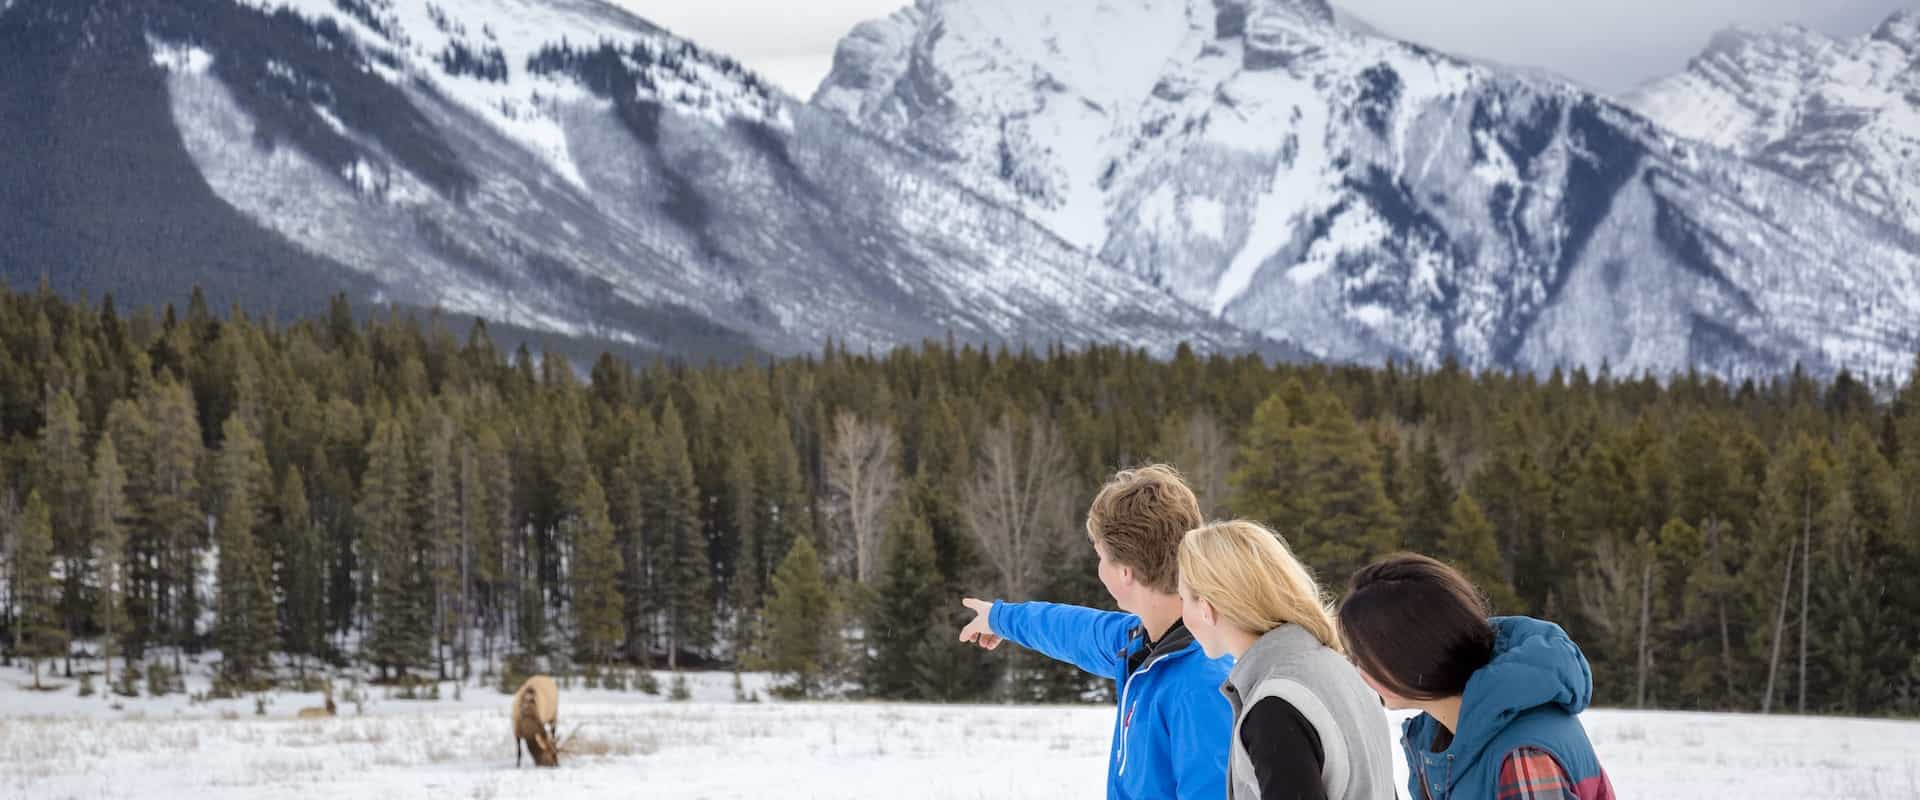 See wildlife on a Banff winter tour with Discover Banff Tours